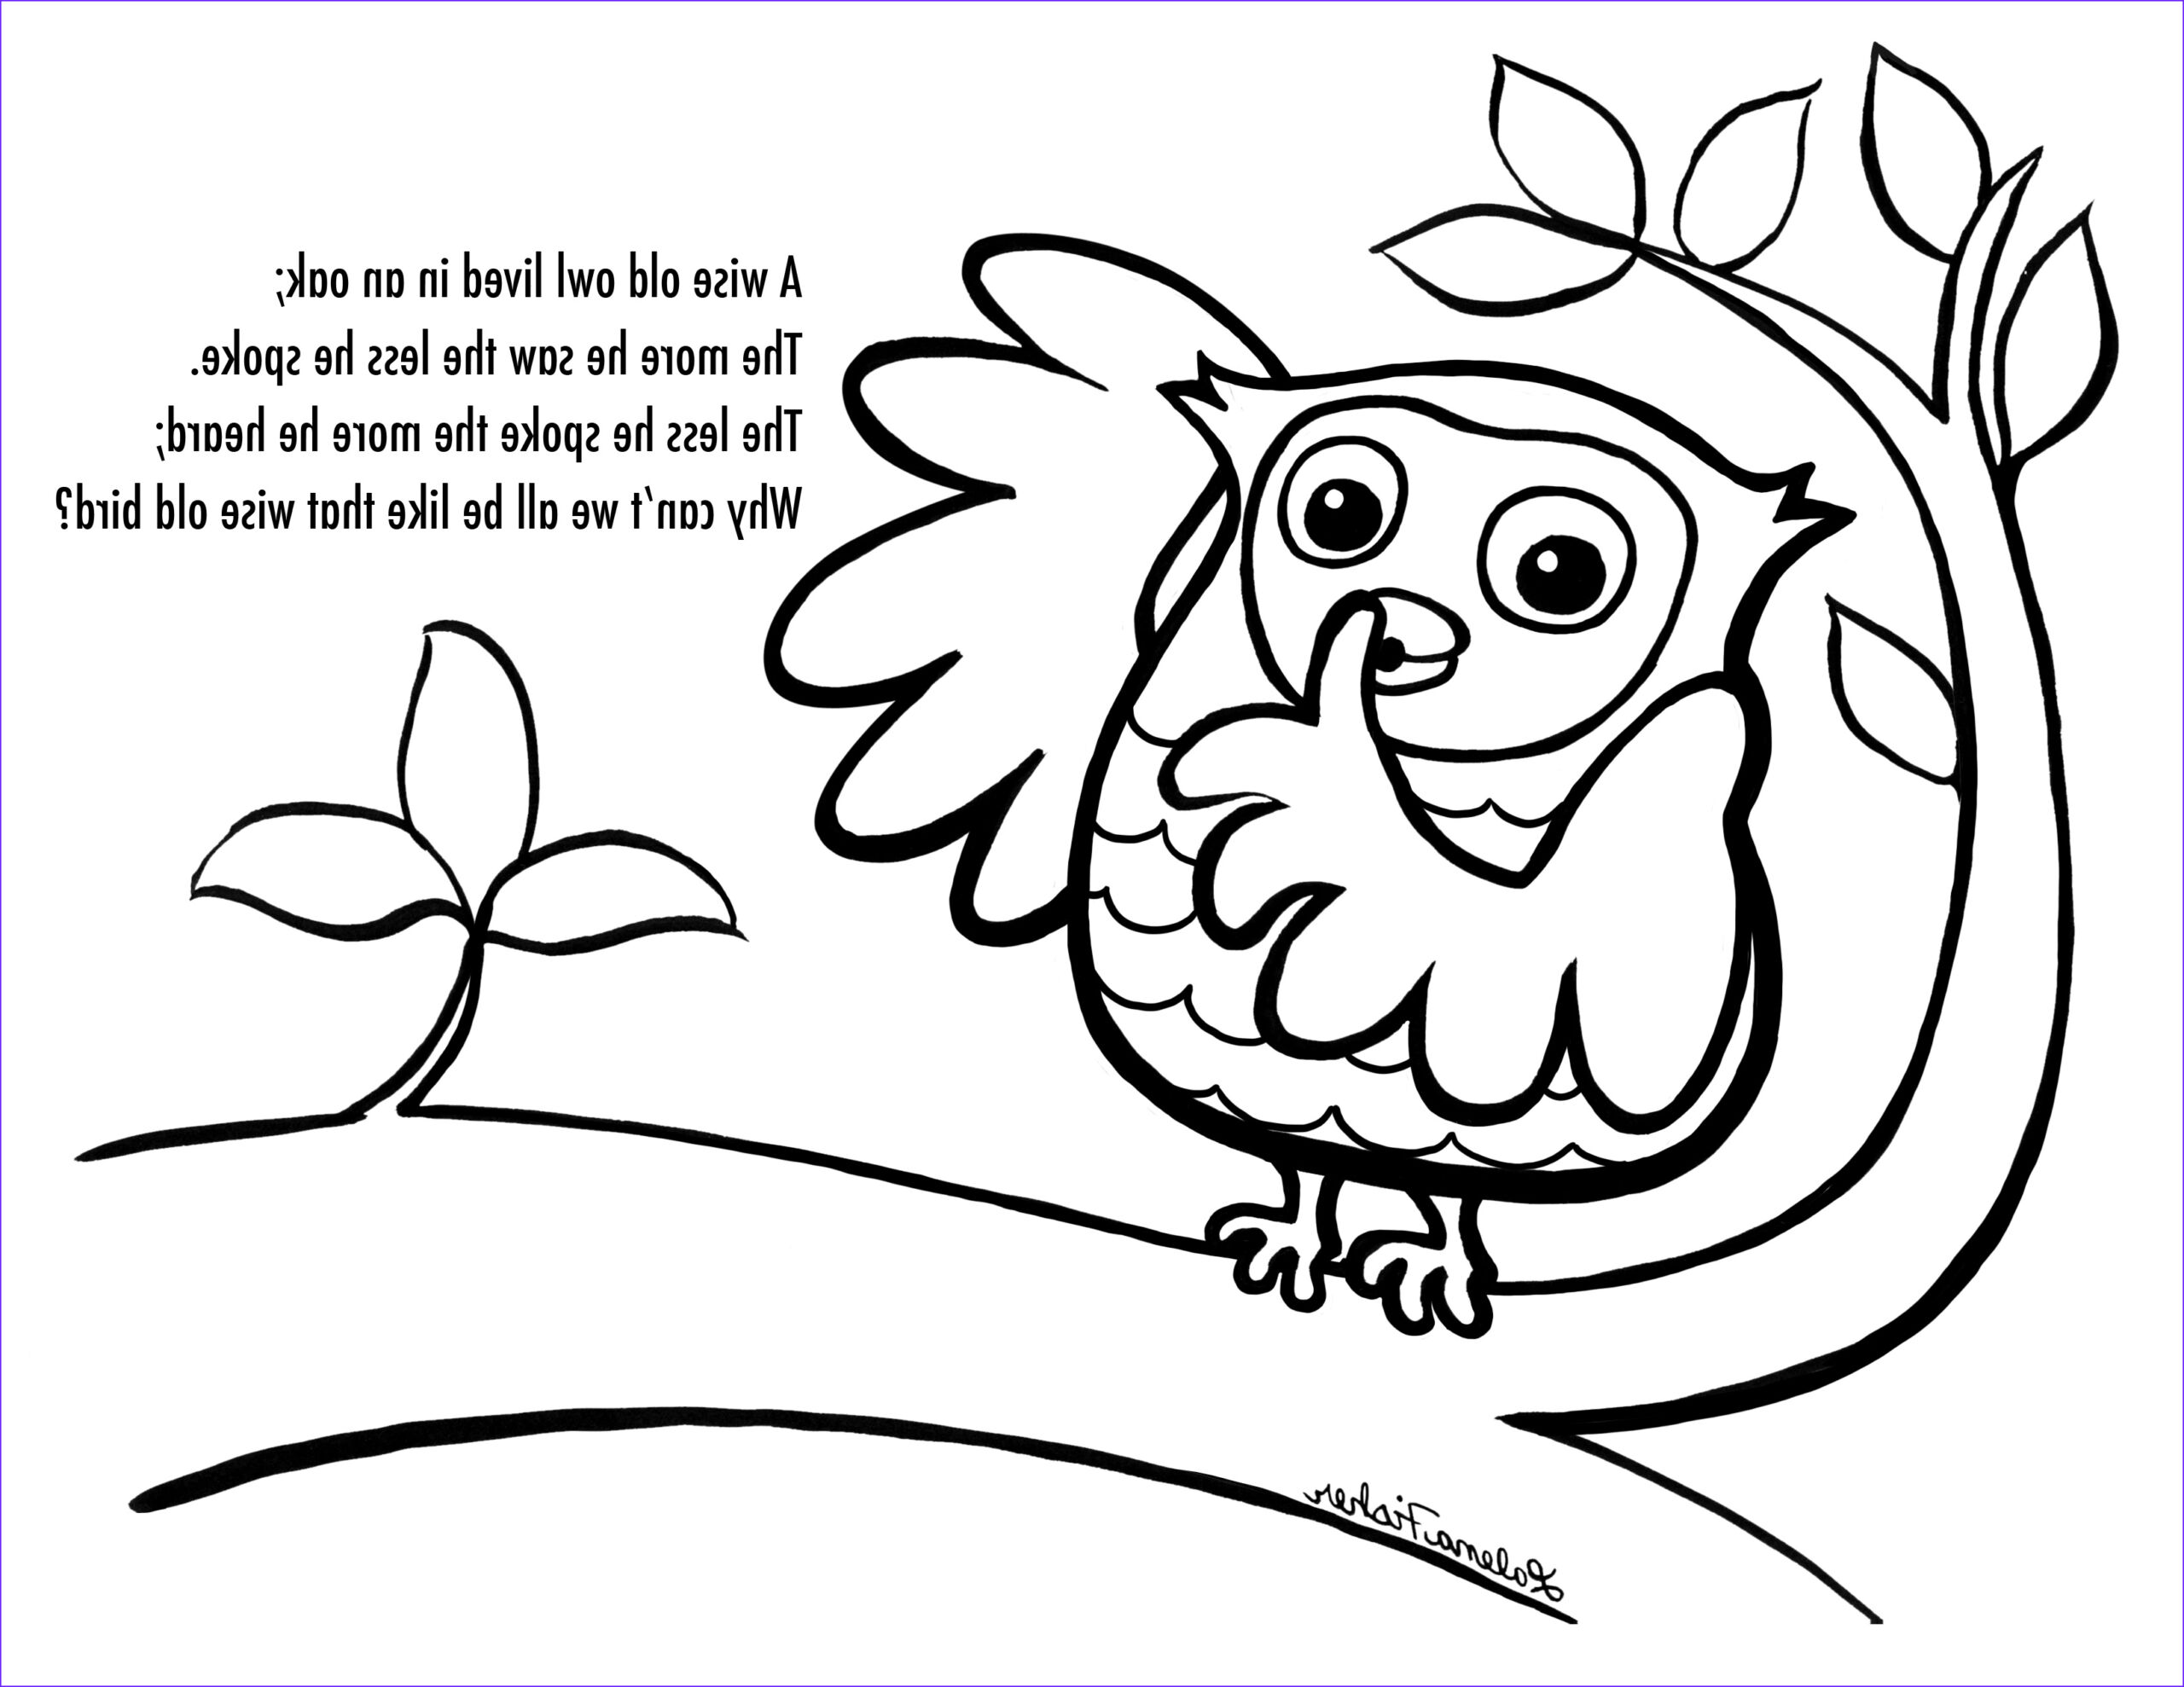 Halloween Owl Coloring Page Awesome Gallery Halloween Owl Drawing at Getdrawings